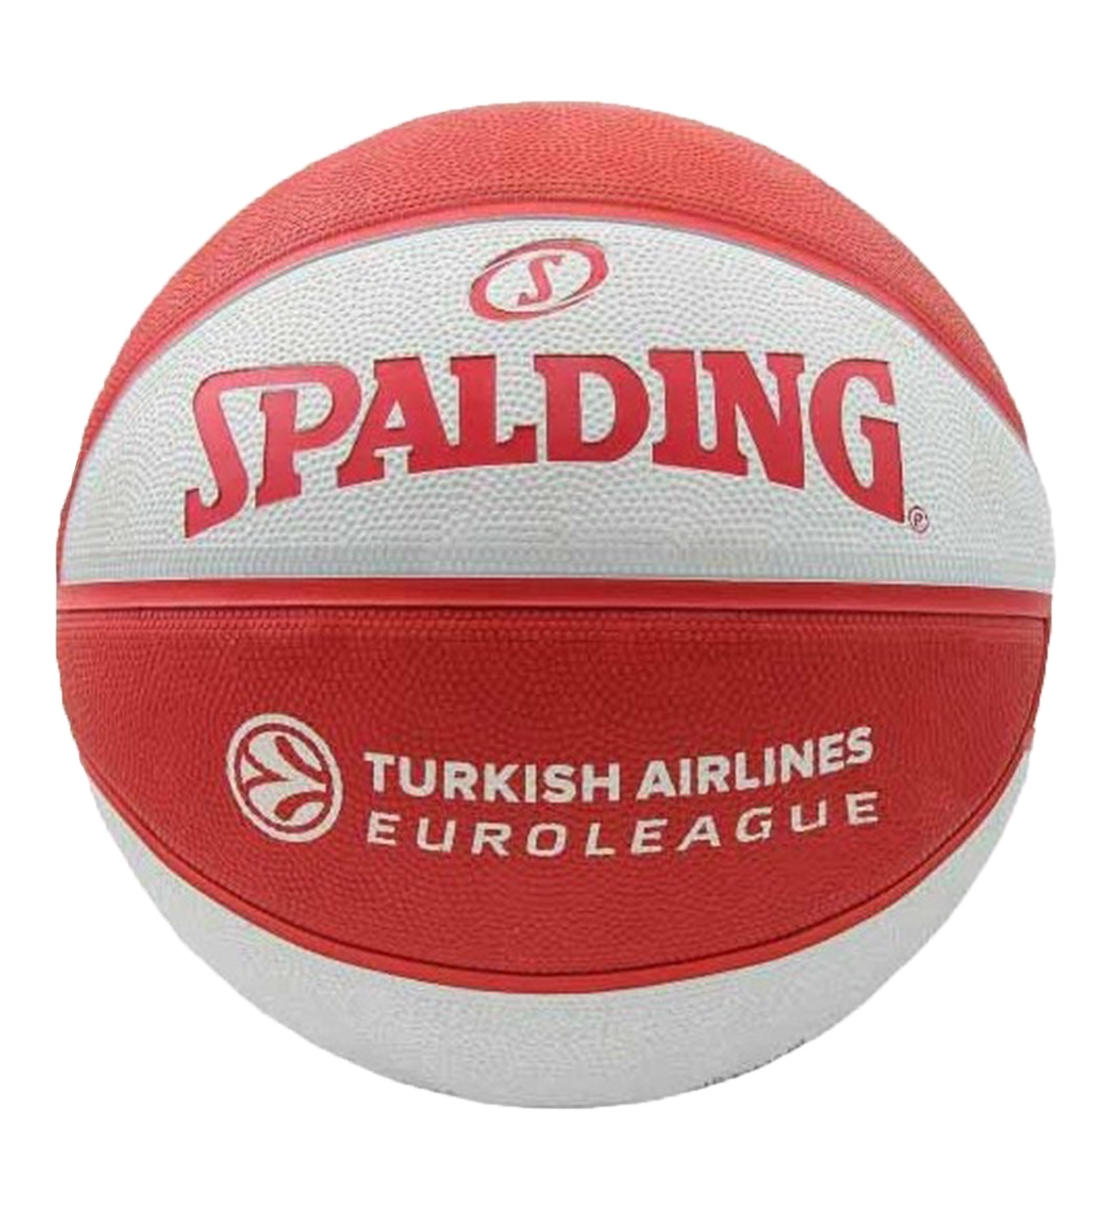 Spalding Μπάλα Basket Euroleague Team Size 7 Rubber Basketball 83032Z1